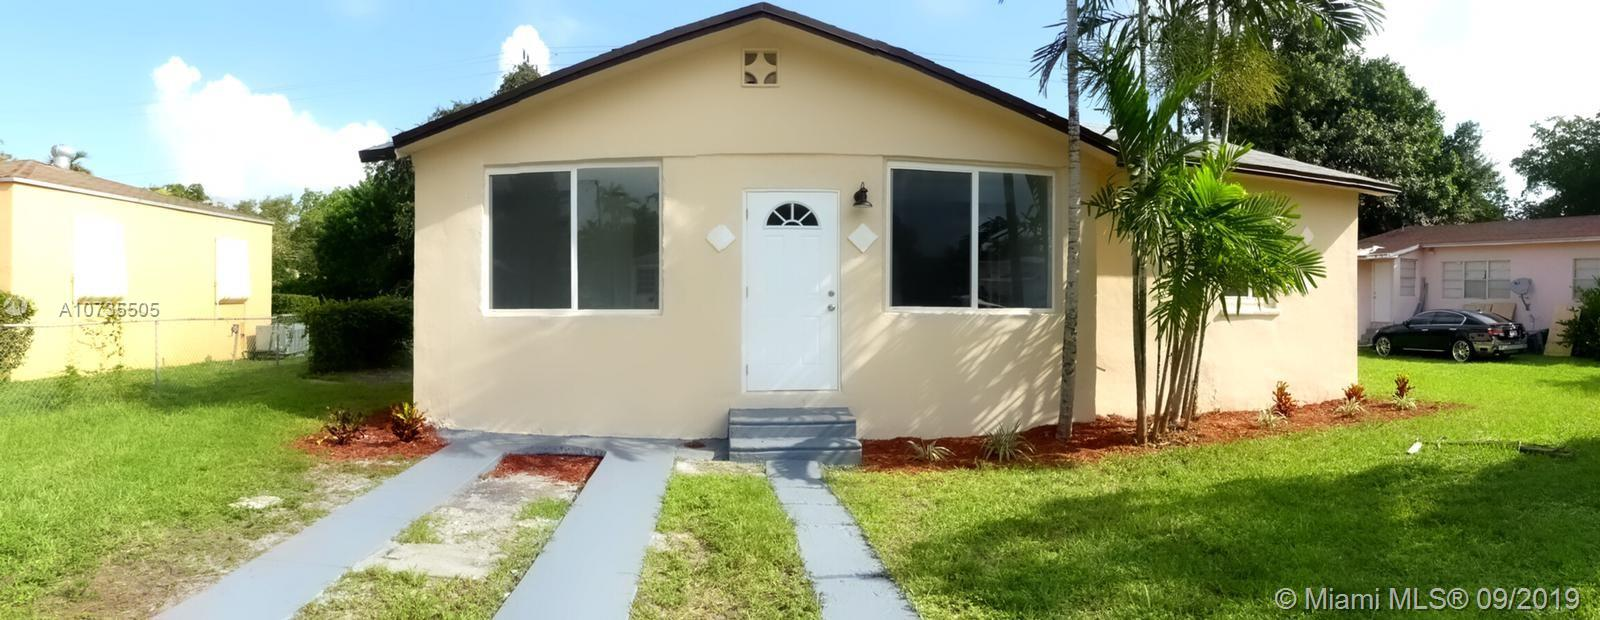 915 NW 59th St  For Sale A10735505, FL